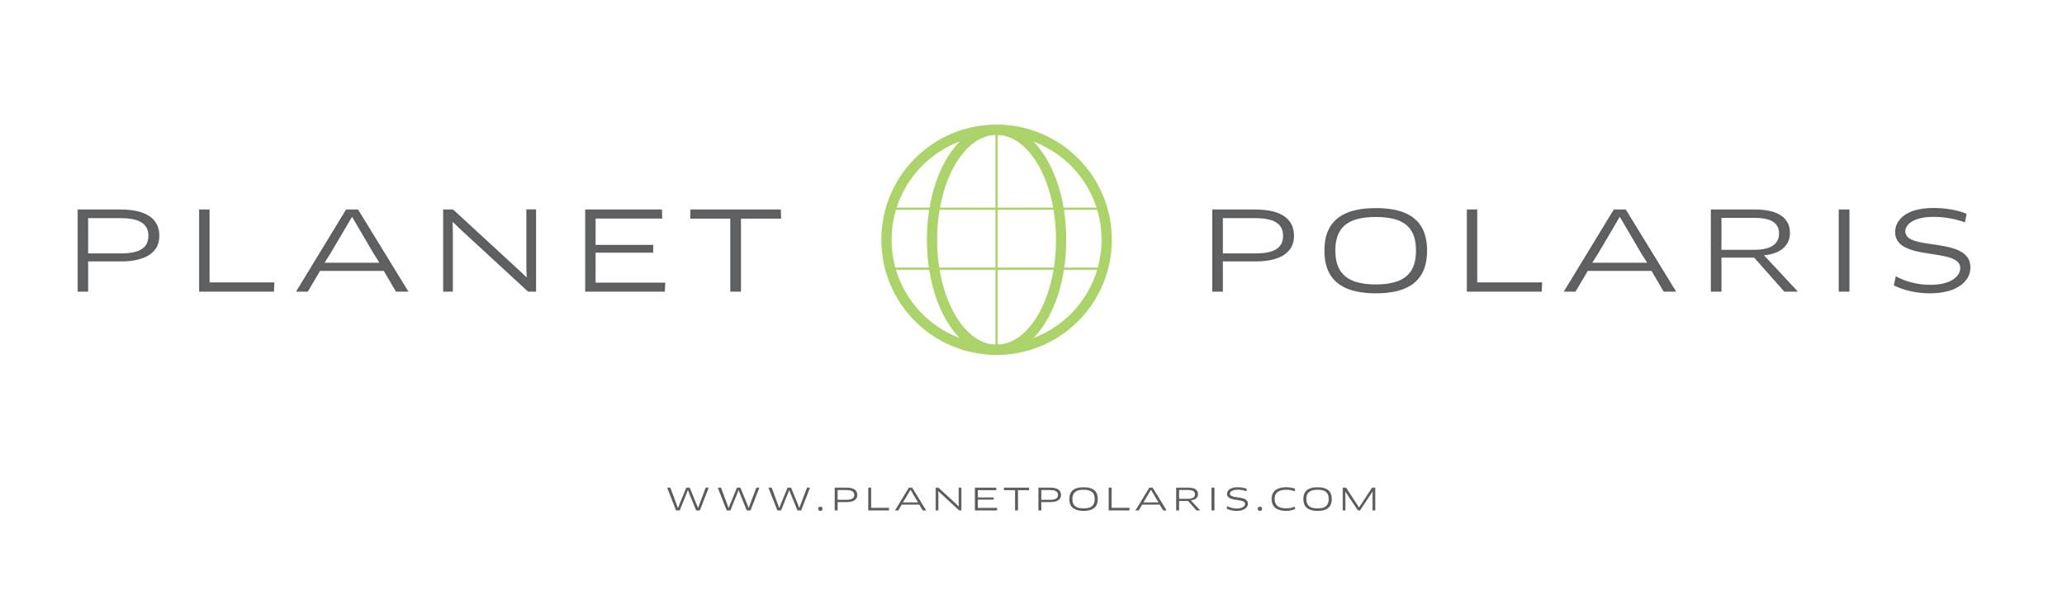 website support at Planet Polaris